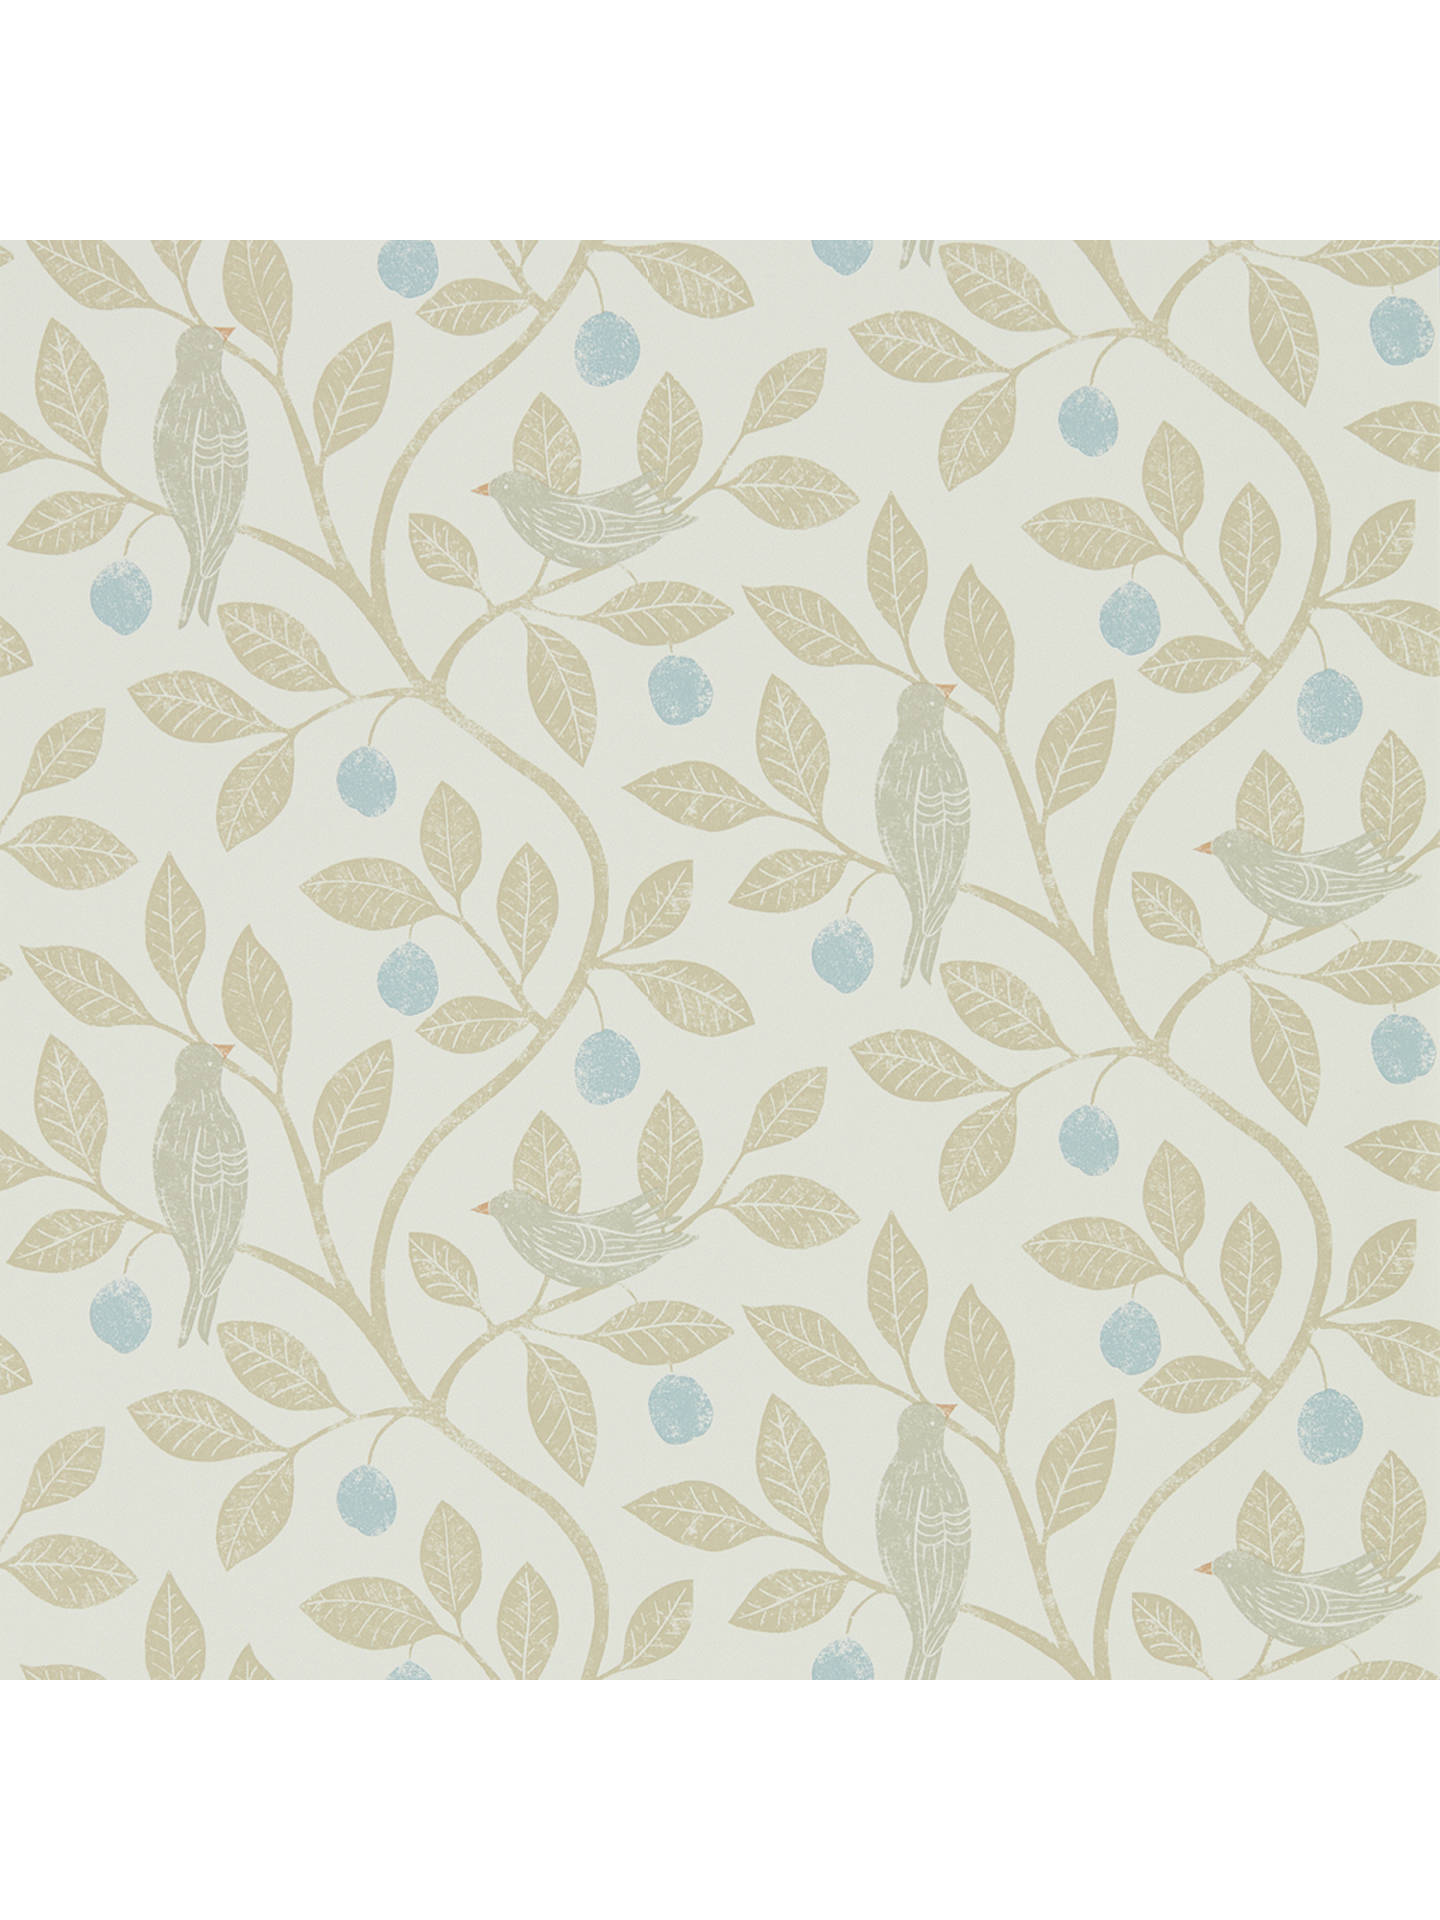 BuySanderson Home Damson Tree Wallpaper DHPO216364 Online at johnlewis.com